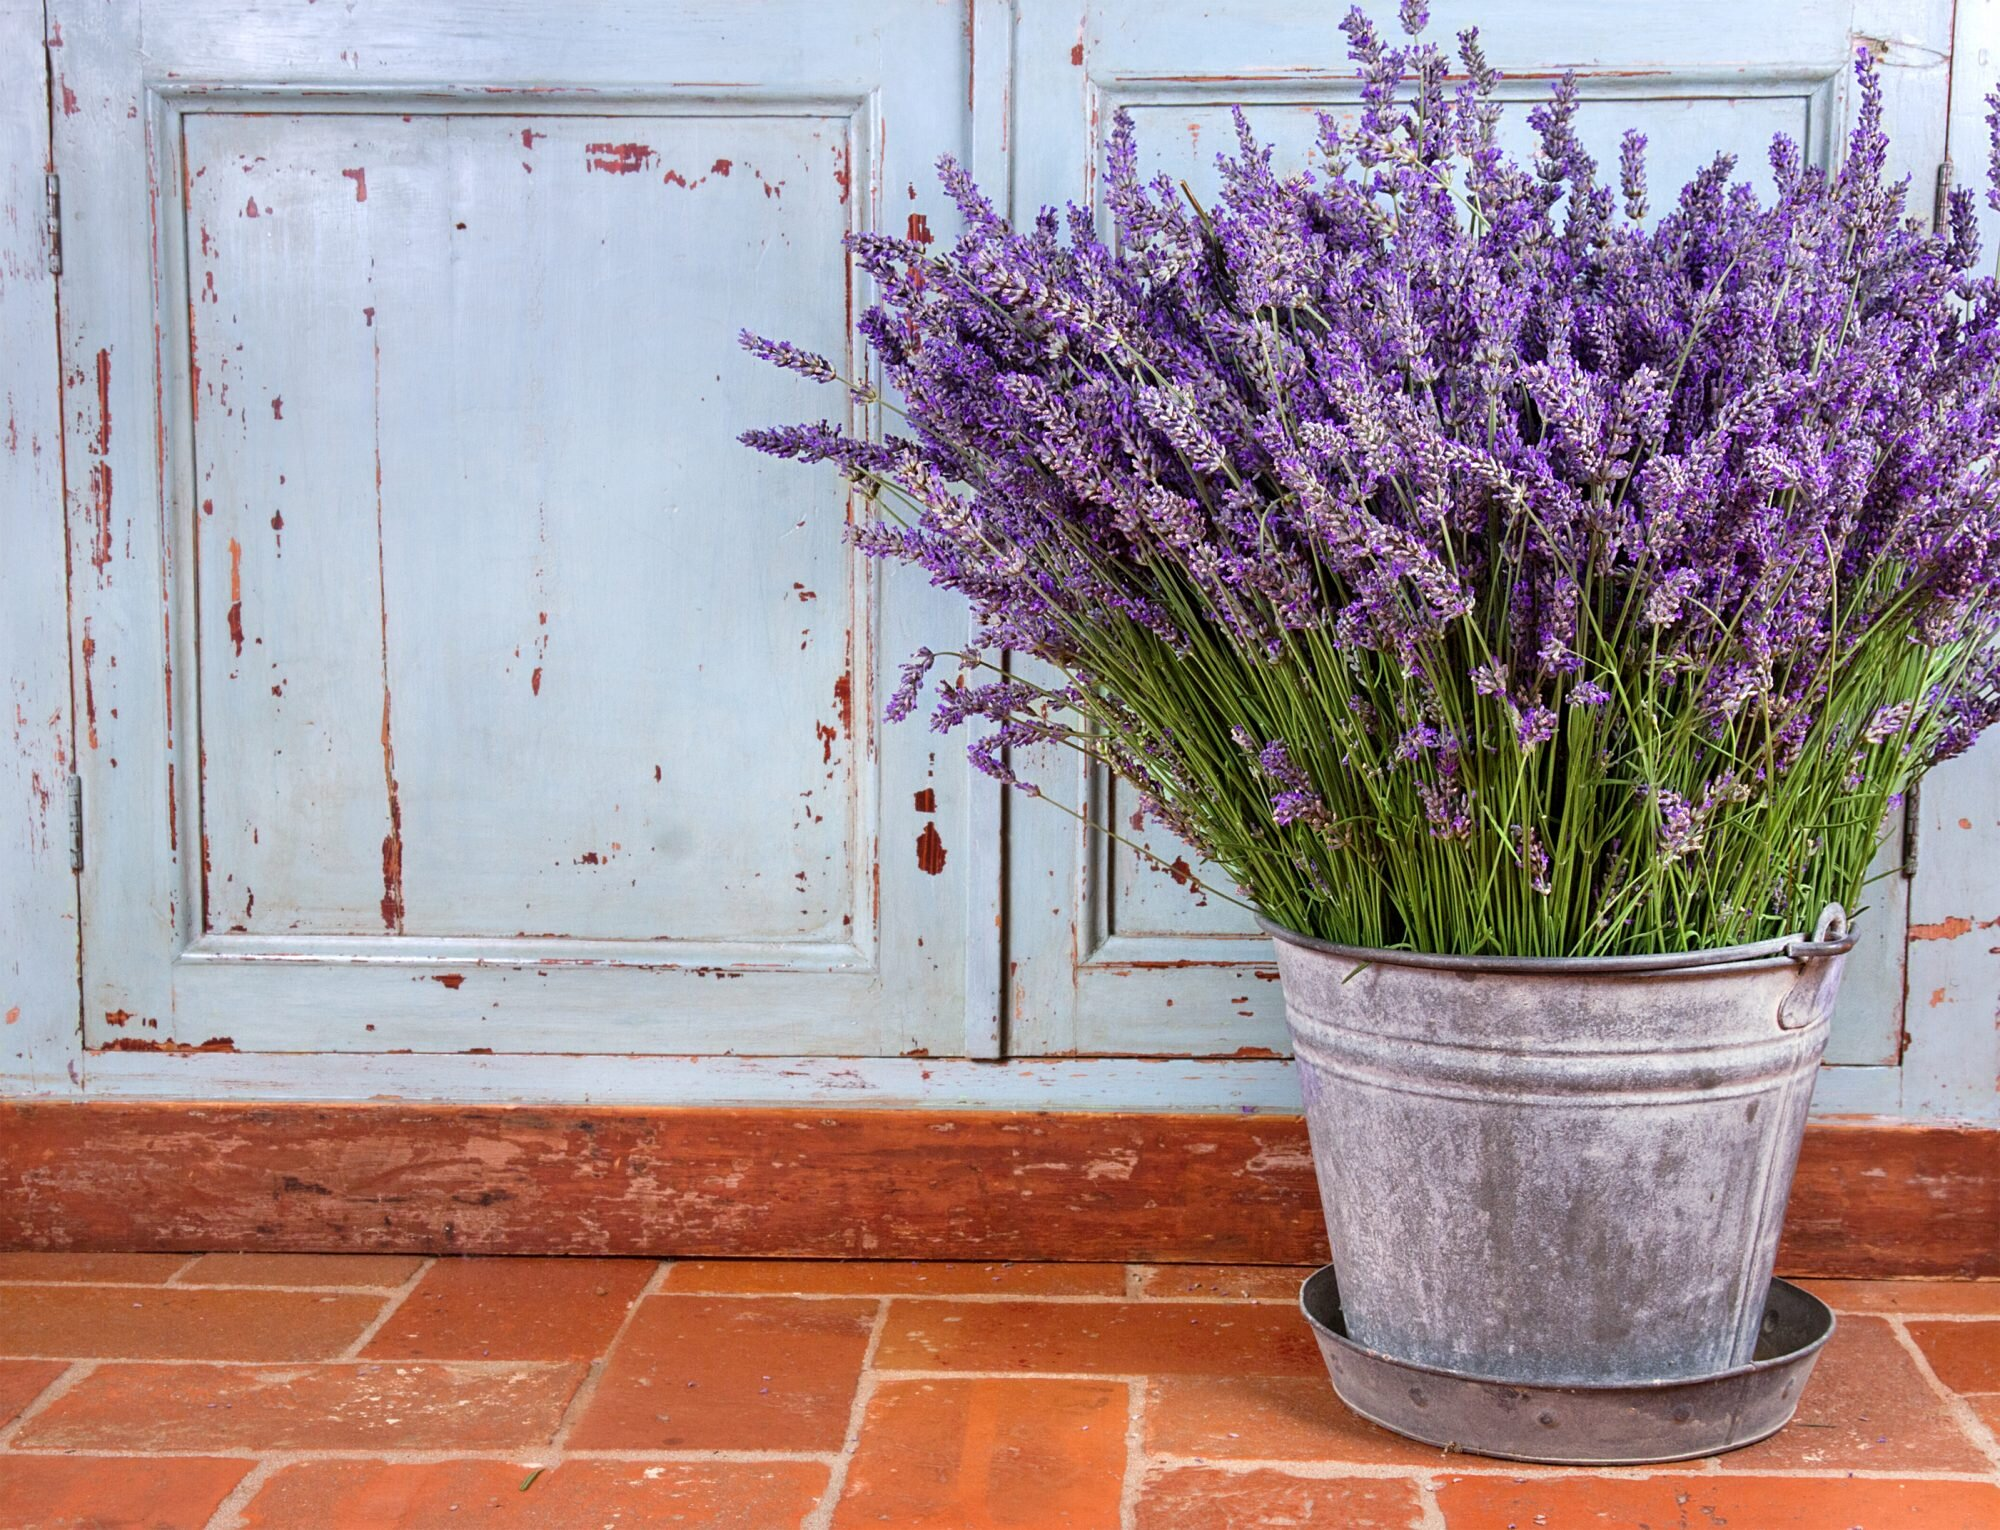 How To Grow Lavendar In Pots: 5 Useful Tips